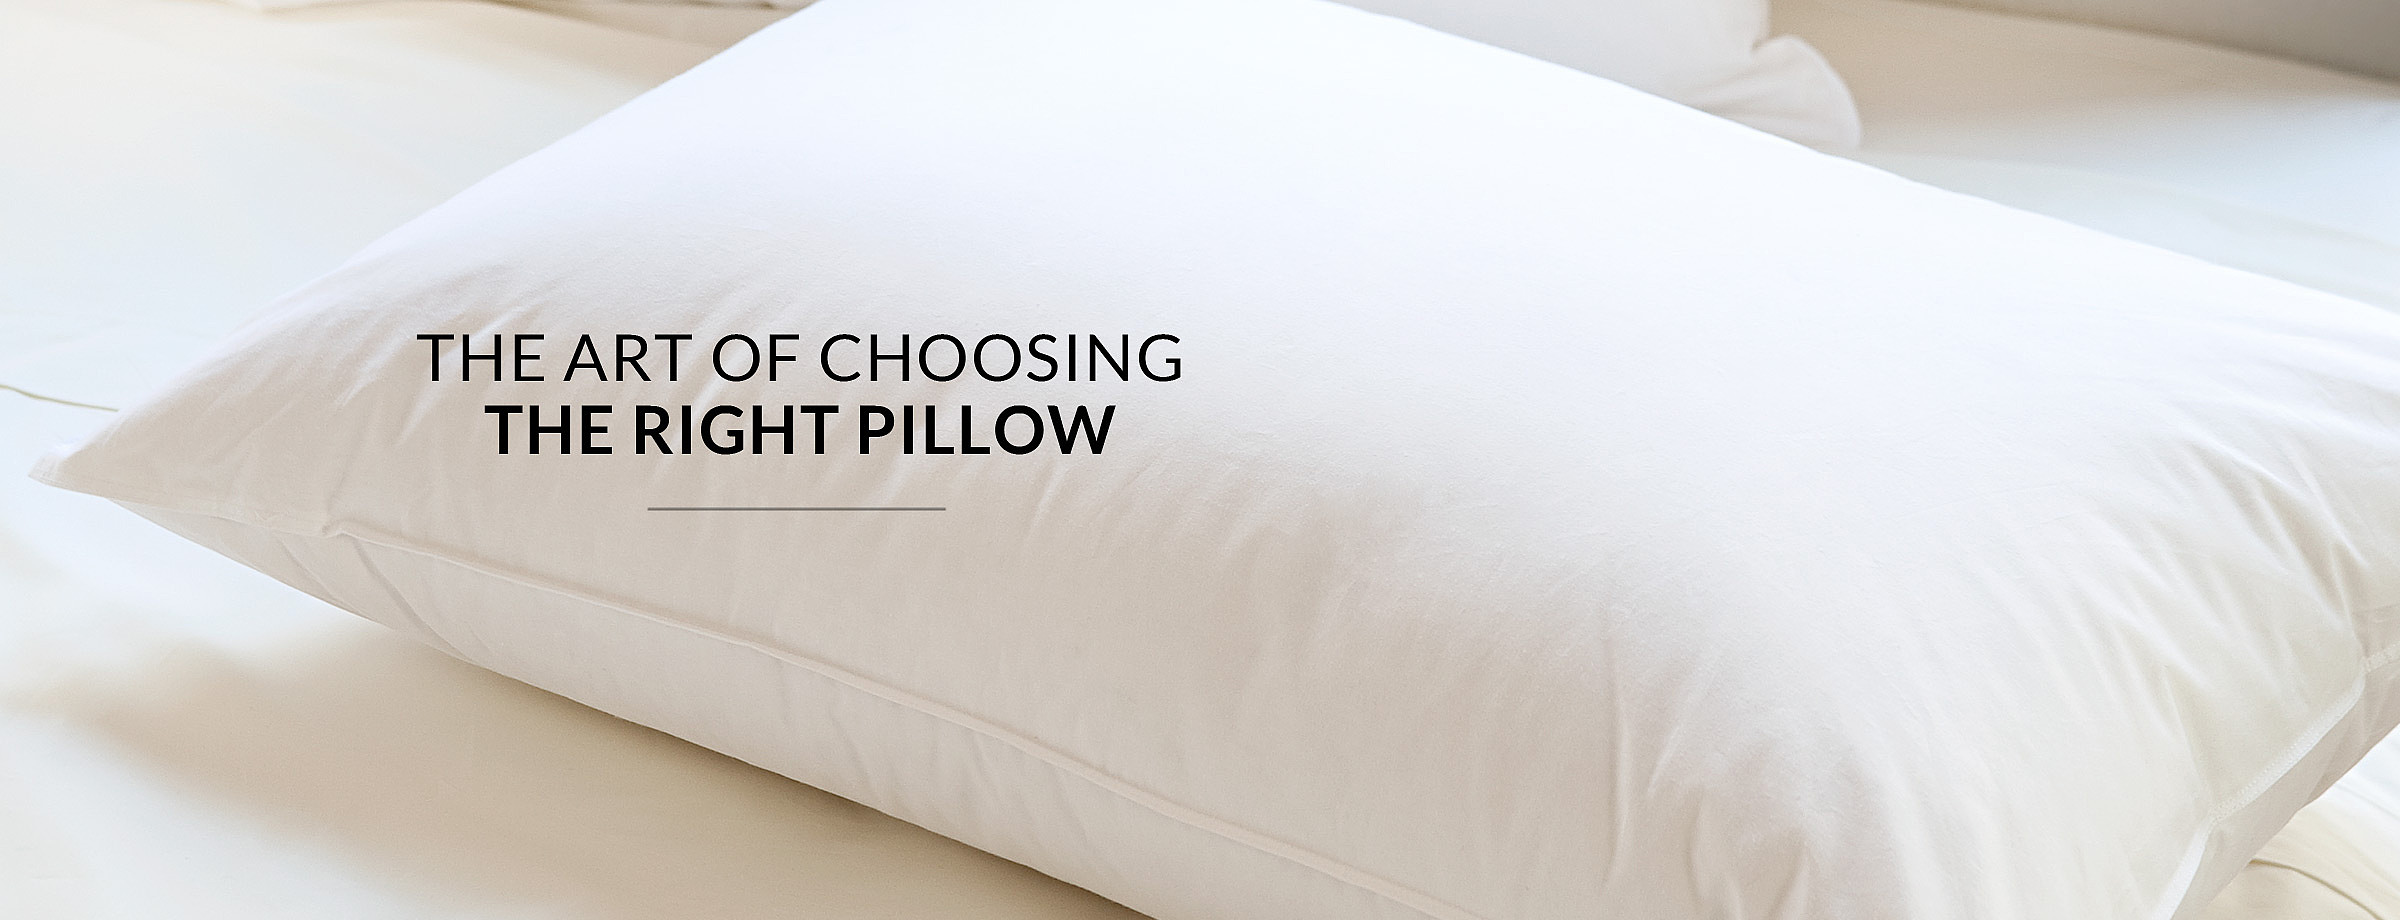 The Art of Choosing the Right Pillow